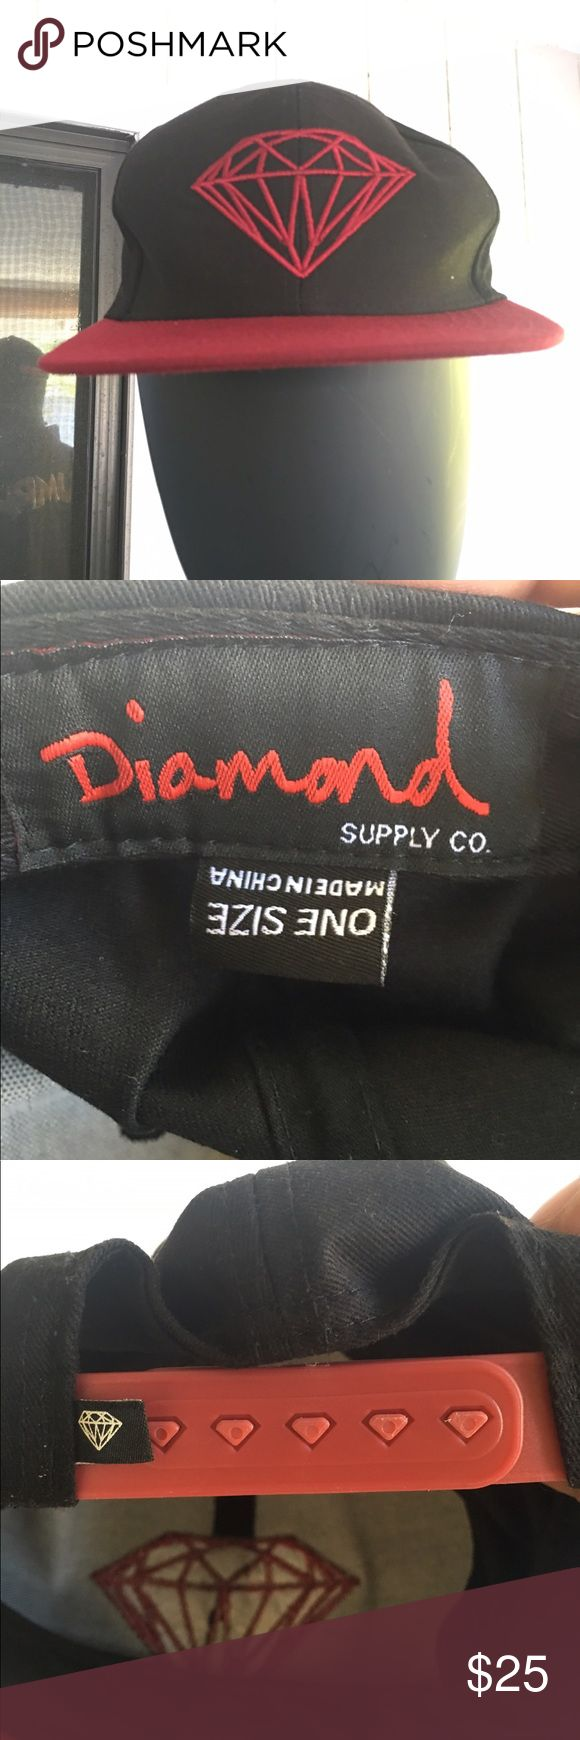 Diamond Supply Co Snapback Hip hop Black Red Hat Pre-Owned Diamond Supply Co Snapback Adjustable Baseball Cap Hip hop Black Red Hat Diamond Supply Co. Accessories Hats